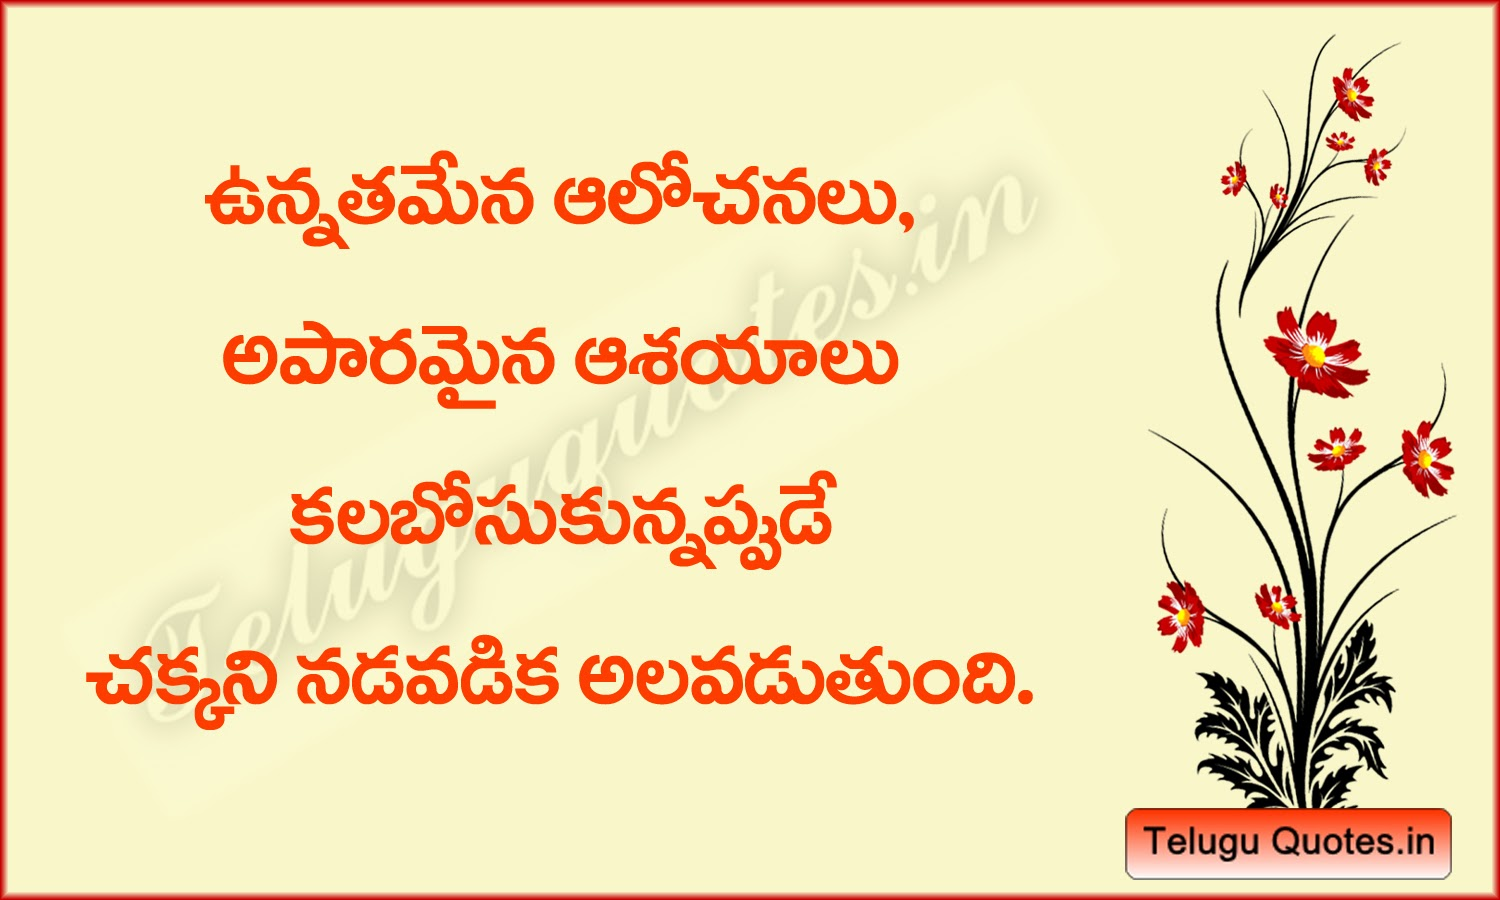 Best Telugu Life Quotes, Best Telugu Quotes, Latest Life Quotes In Telugu,  Telugu New Quotes On Life, Latest Telugu Quotes, Telugu Quotes, Life  Wallapapers, ...